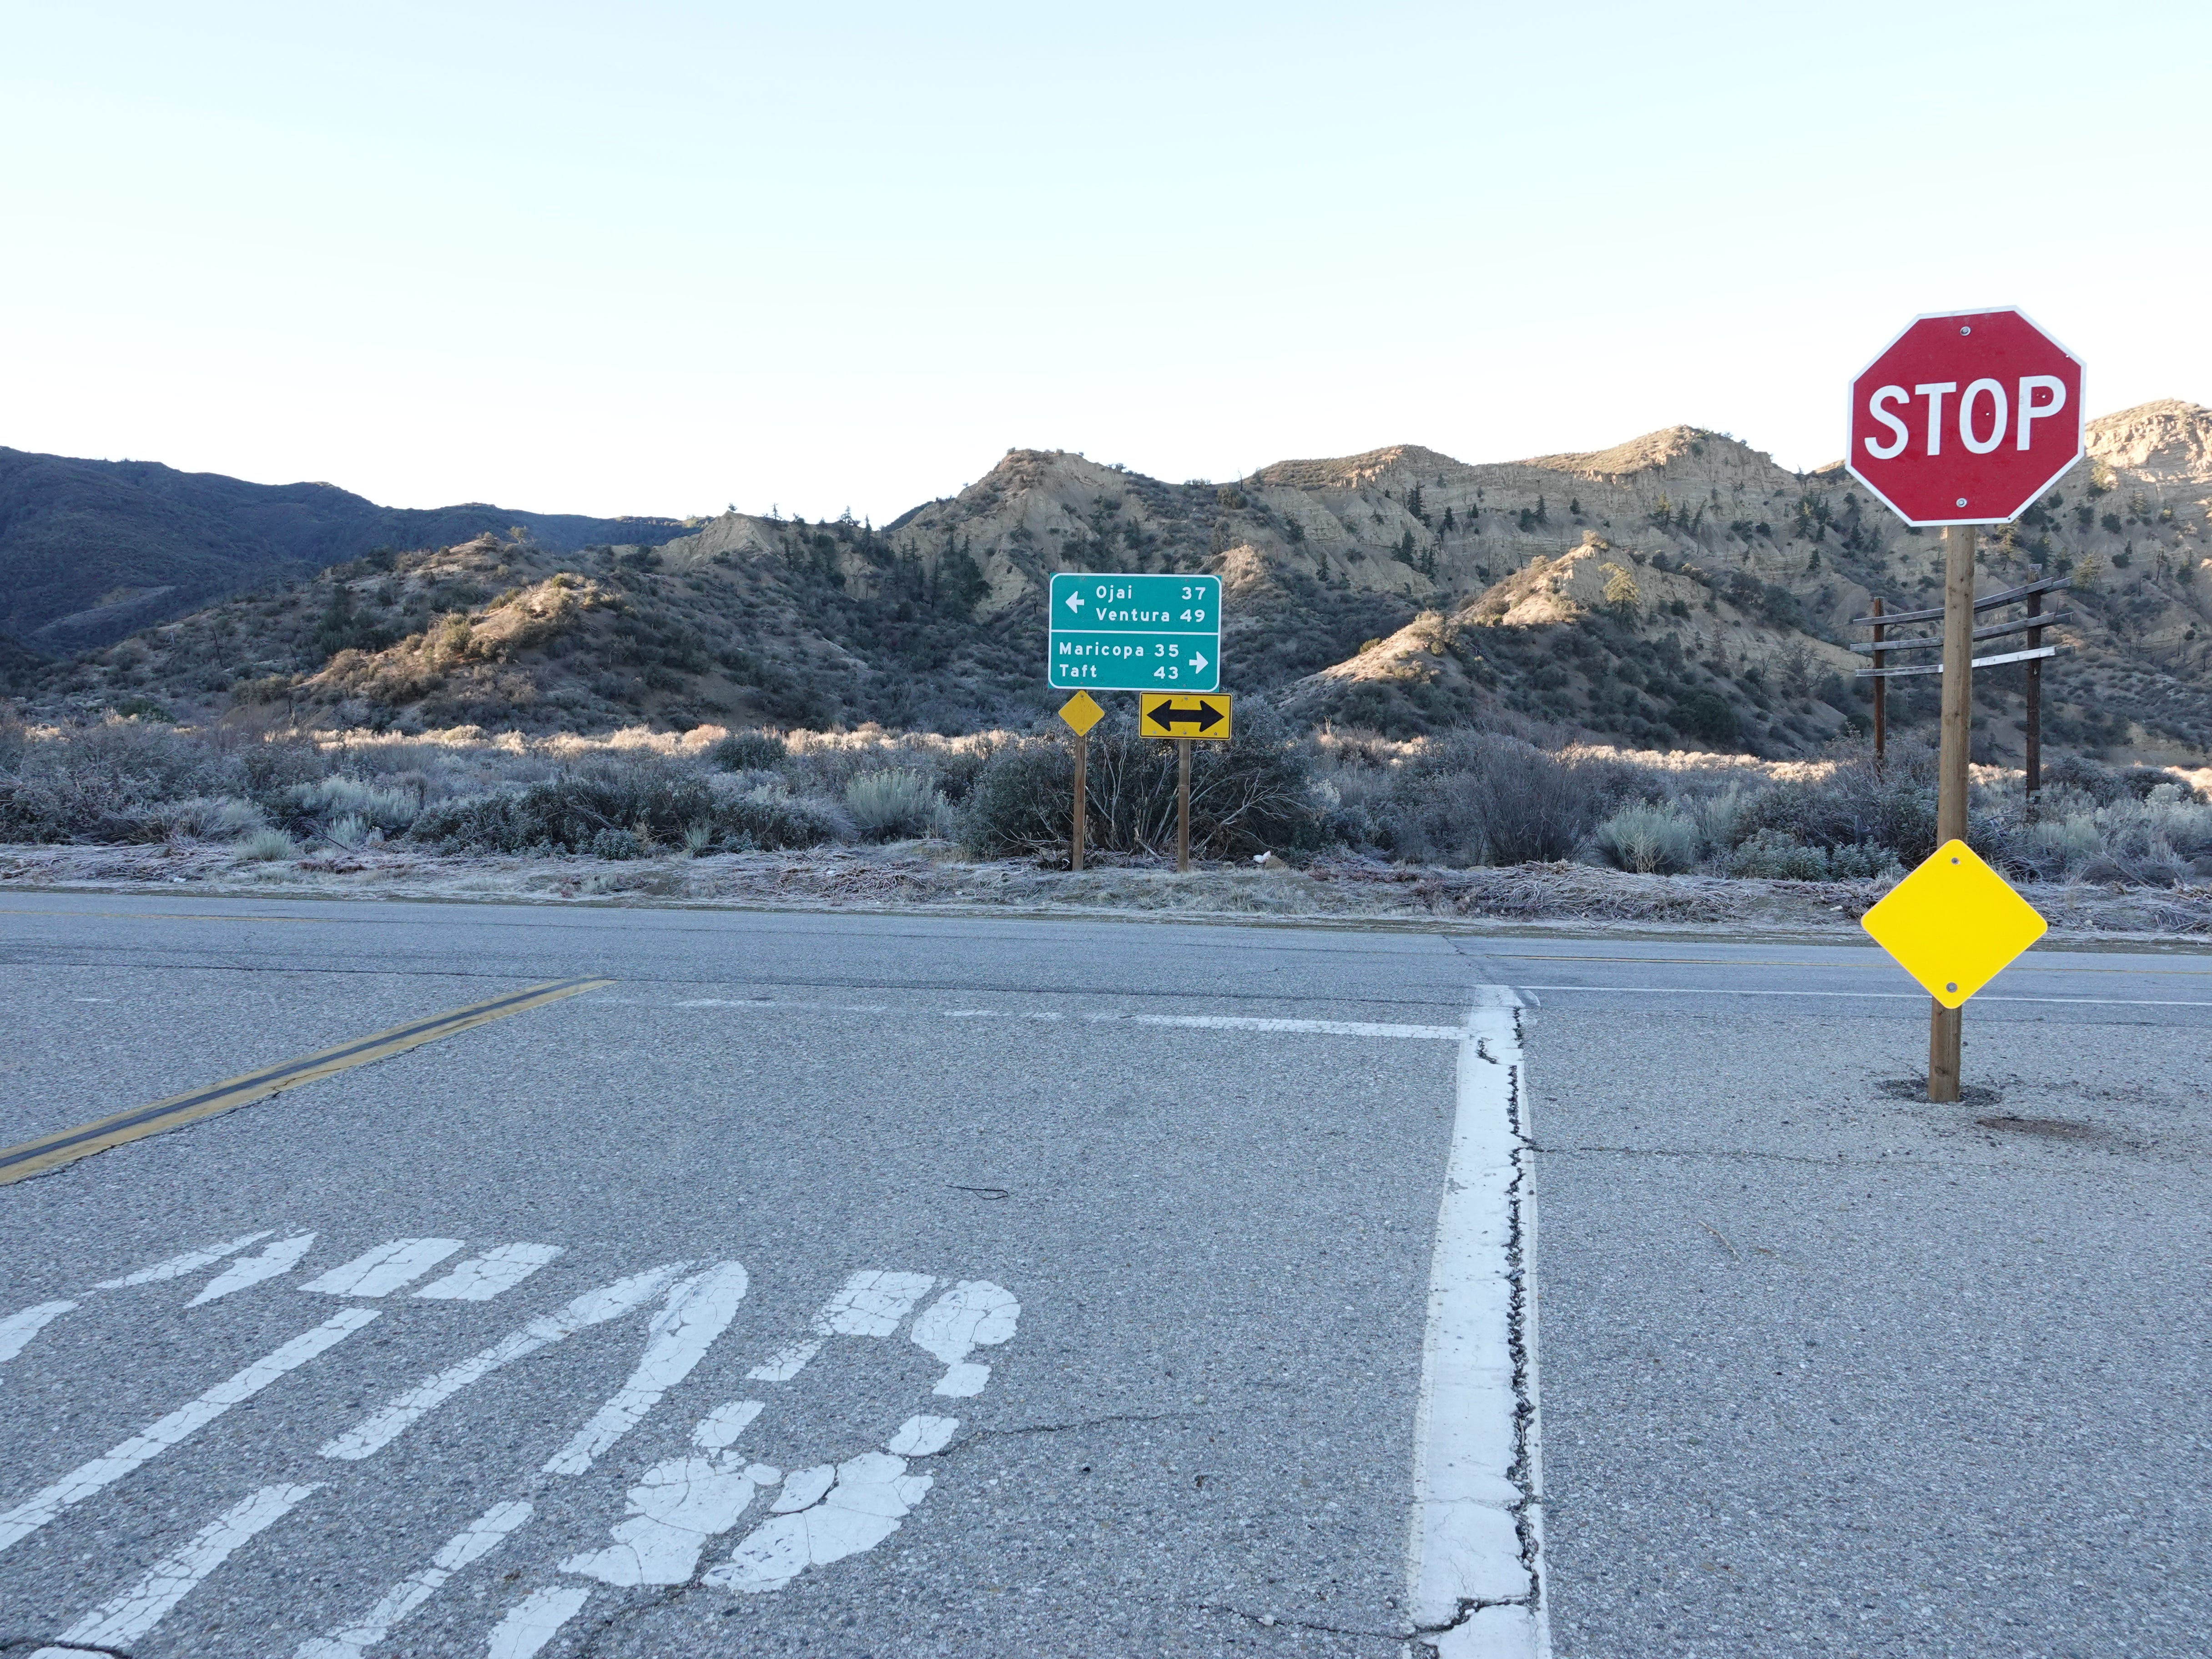 From Lockwood Valley Road at the junction with Highway 33, a green sign directs motorists toward Ojai or Taft. The stop sign is about 18 miles from the Ventura County sheriff's Lockwood Valley substation, where two deputies patrol 610 square miles.